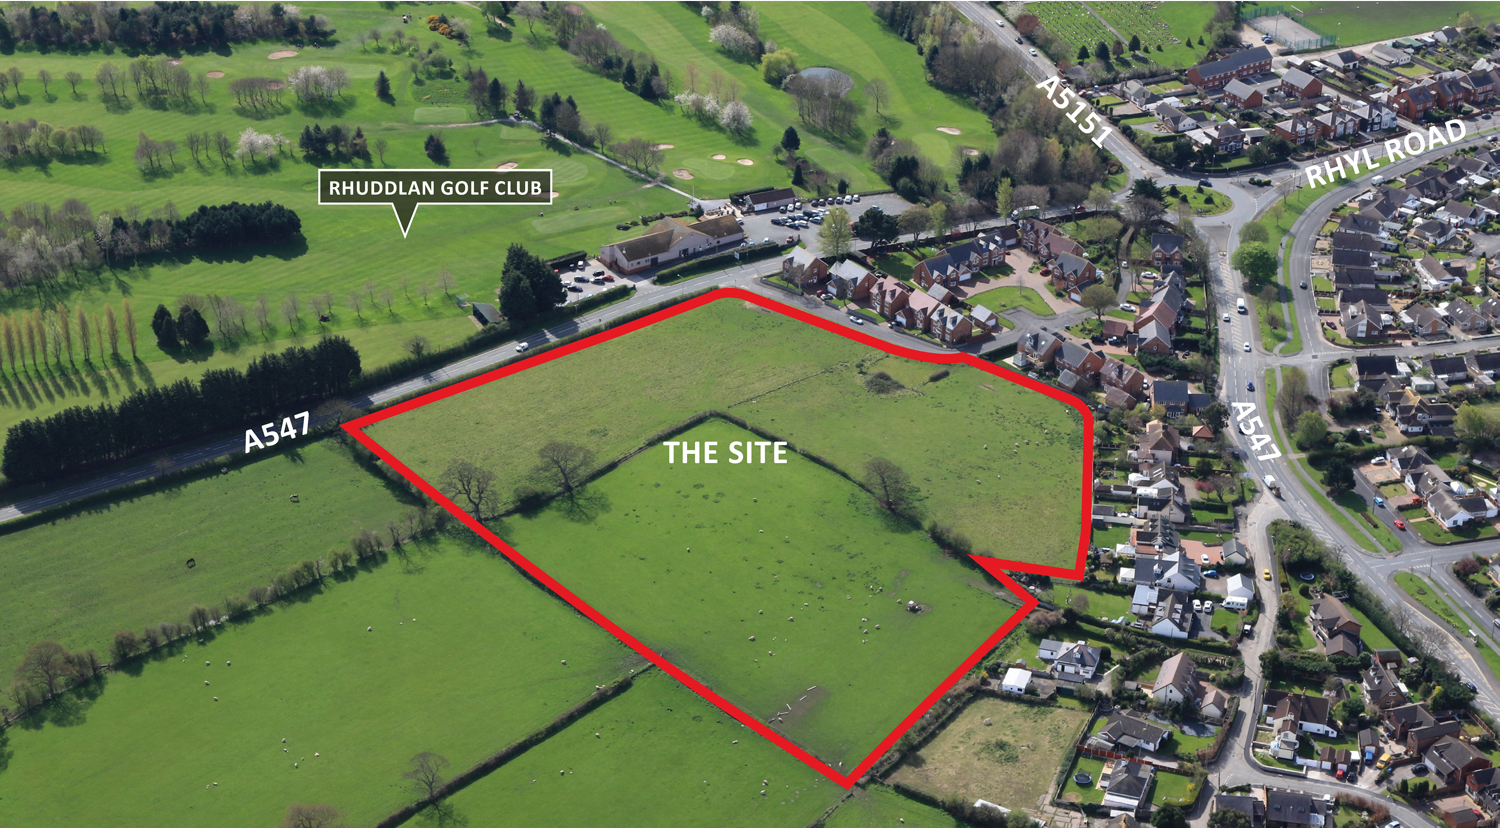 An aerial view of the site near Rhuddlan Golf Club which is earmarked for development